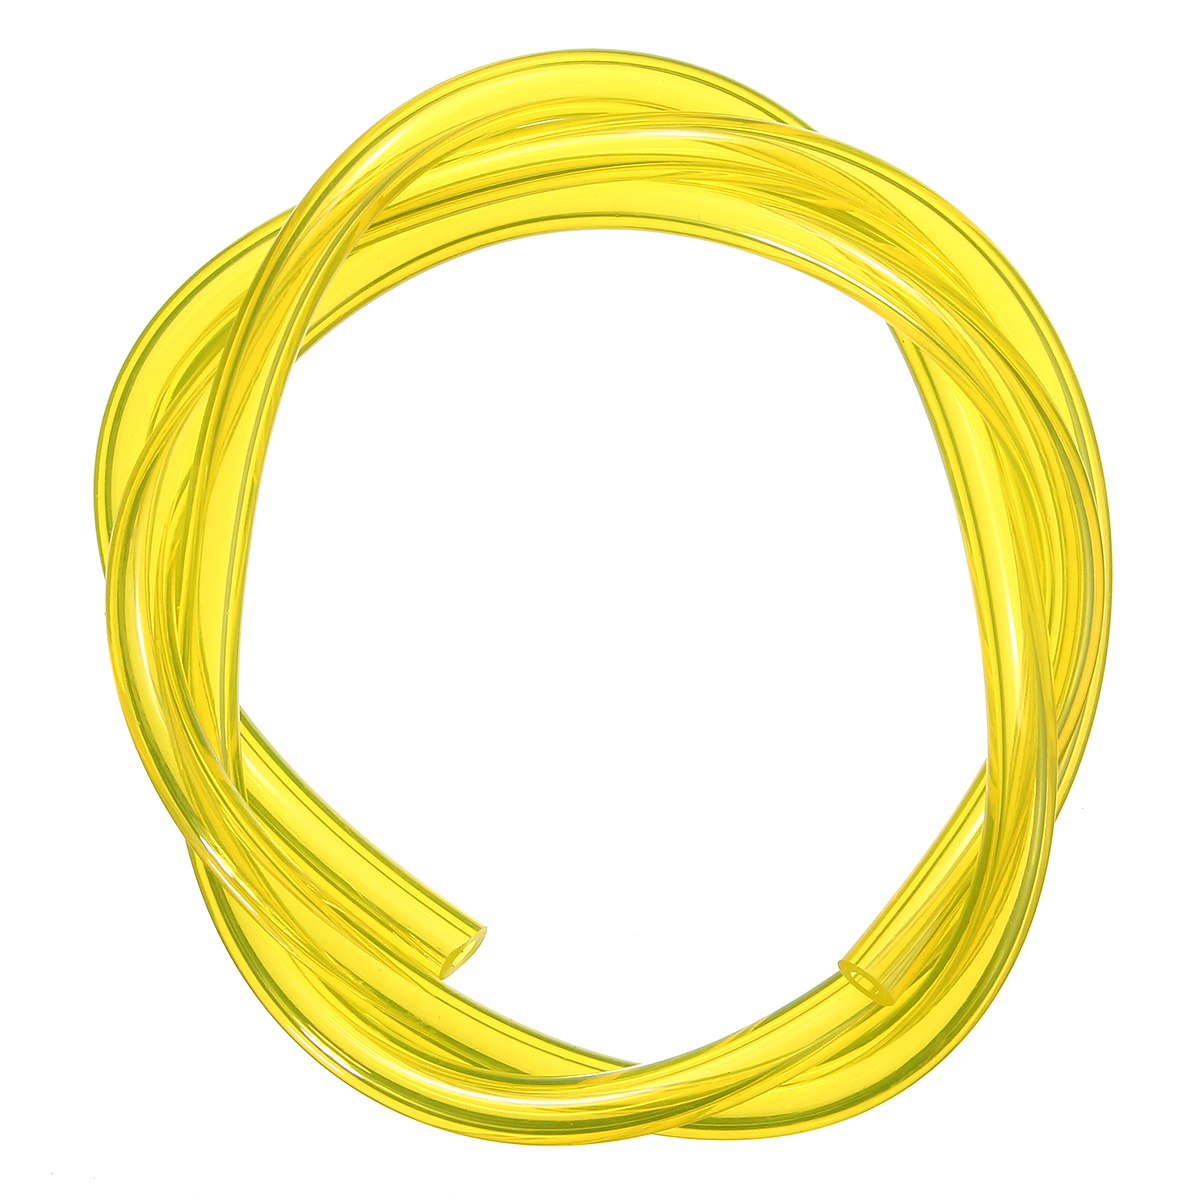 hight resolution of 2 5x5mm fuel hose fuel filter hose for mower motorcycle scooter brushcutter